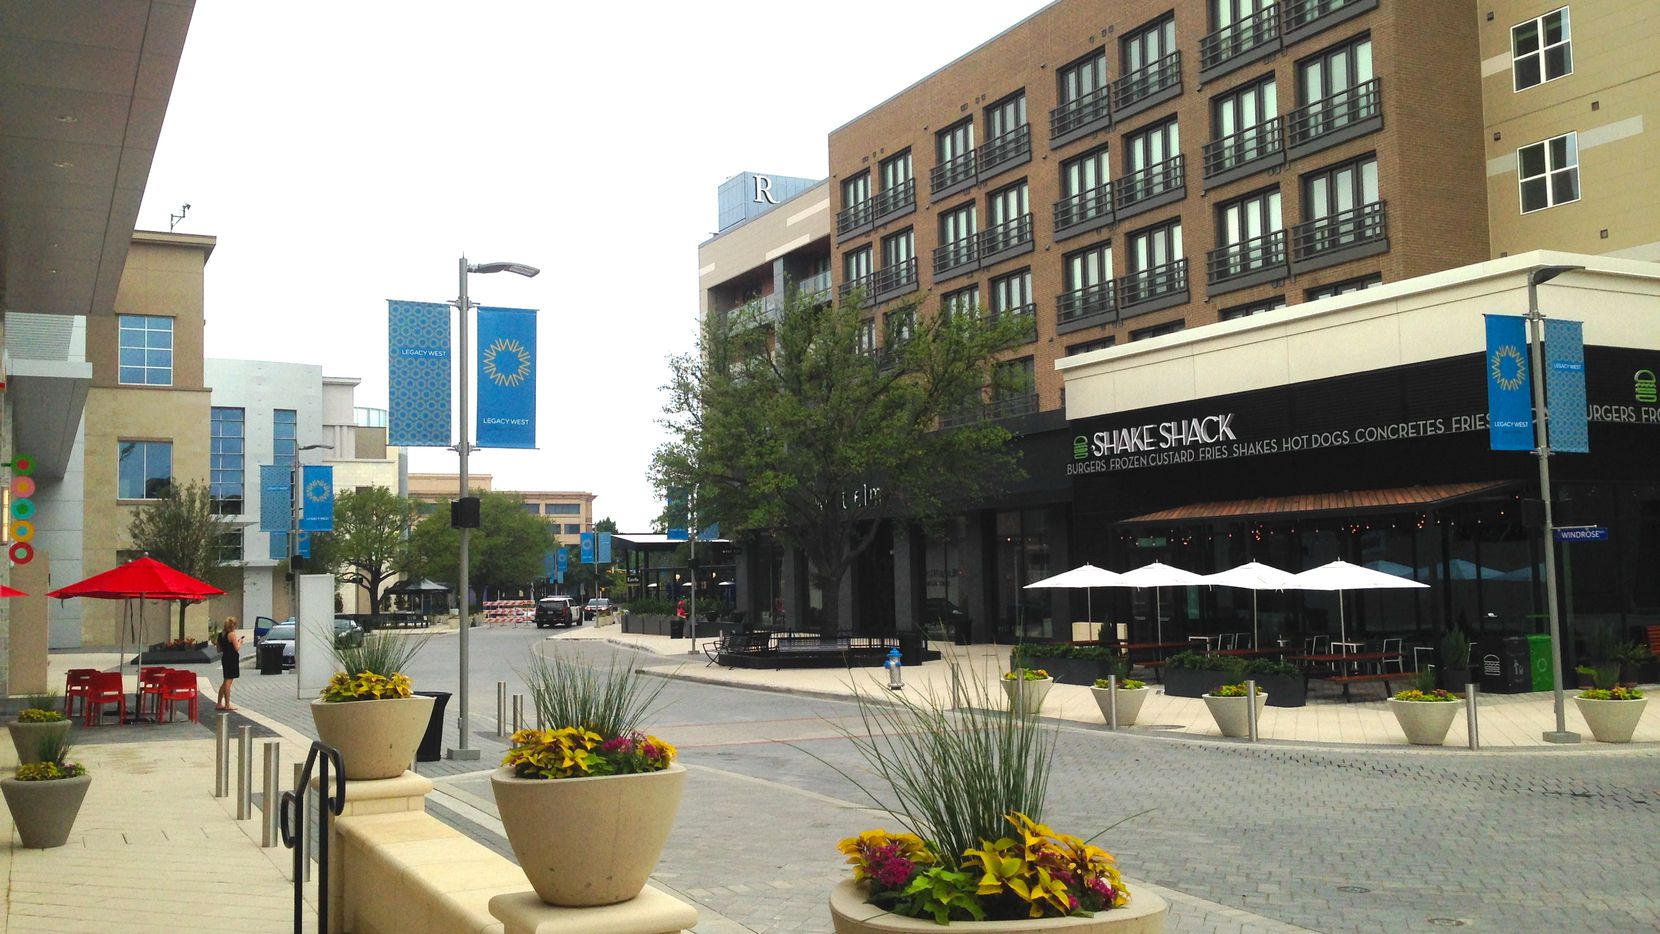 Legacy West Urban Village which kicked off construction in early 2014 opens this weekend.